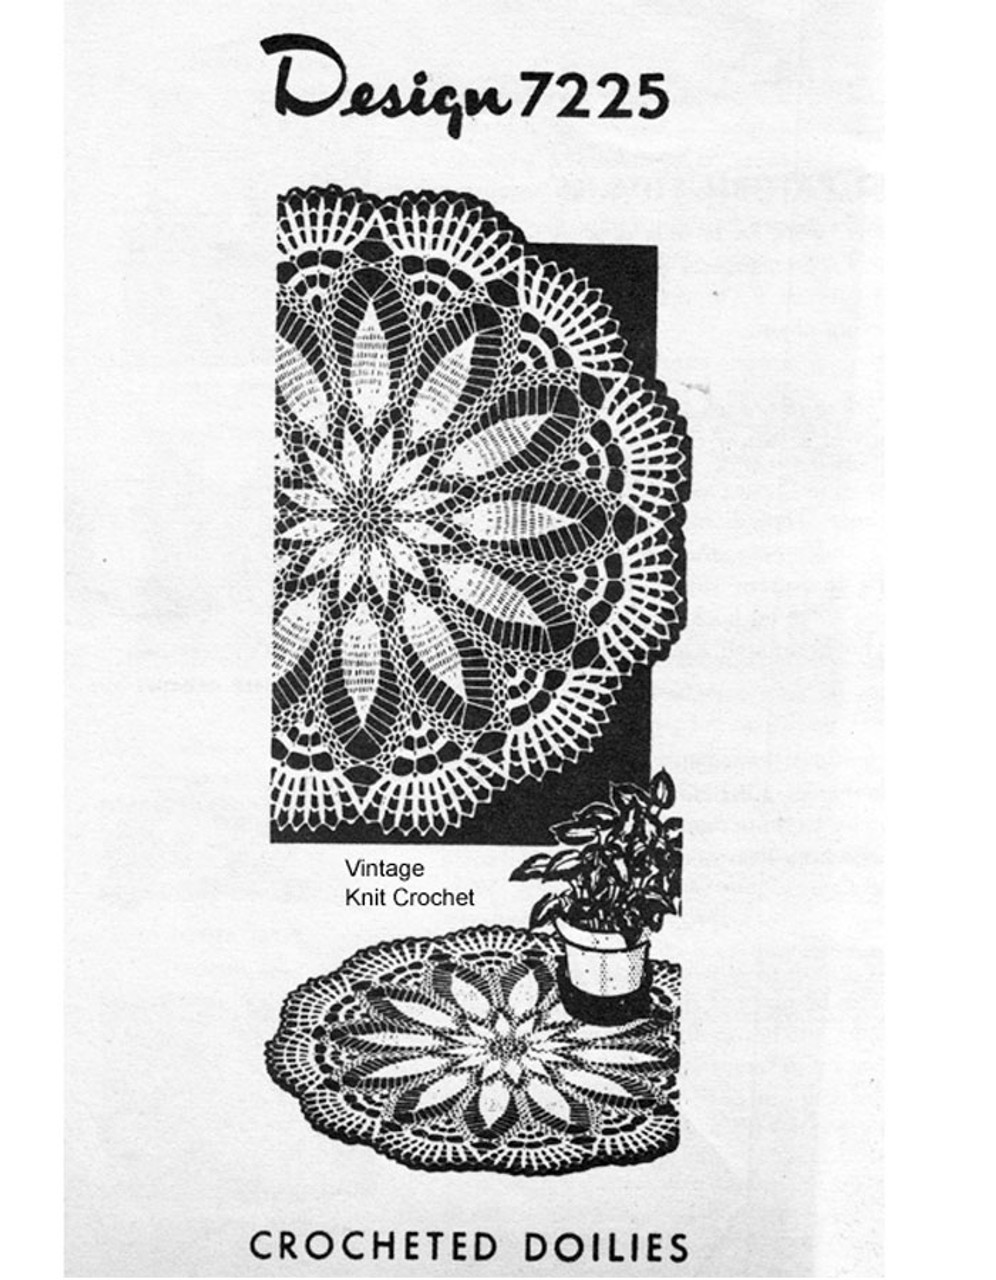 Crochet Doily Pattern, Pineapple Flower, Mail Order Design 7225